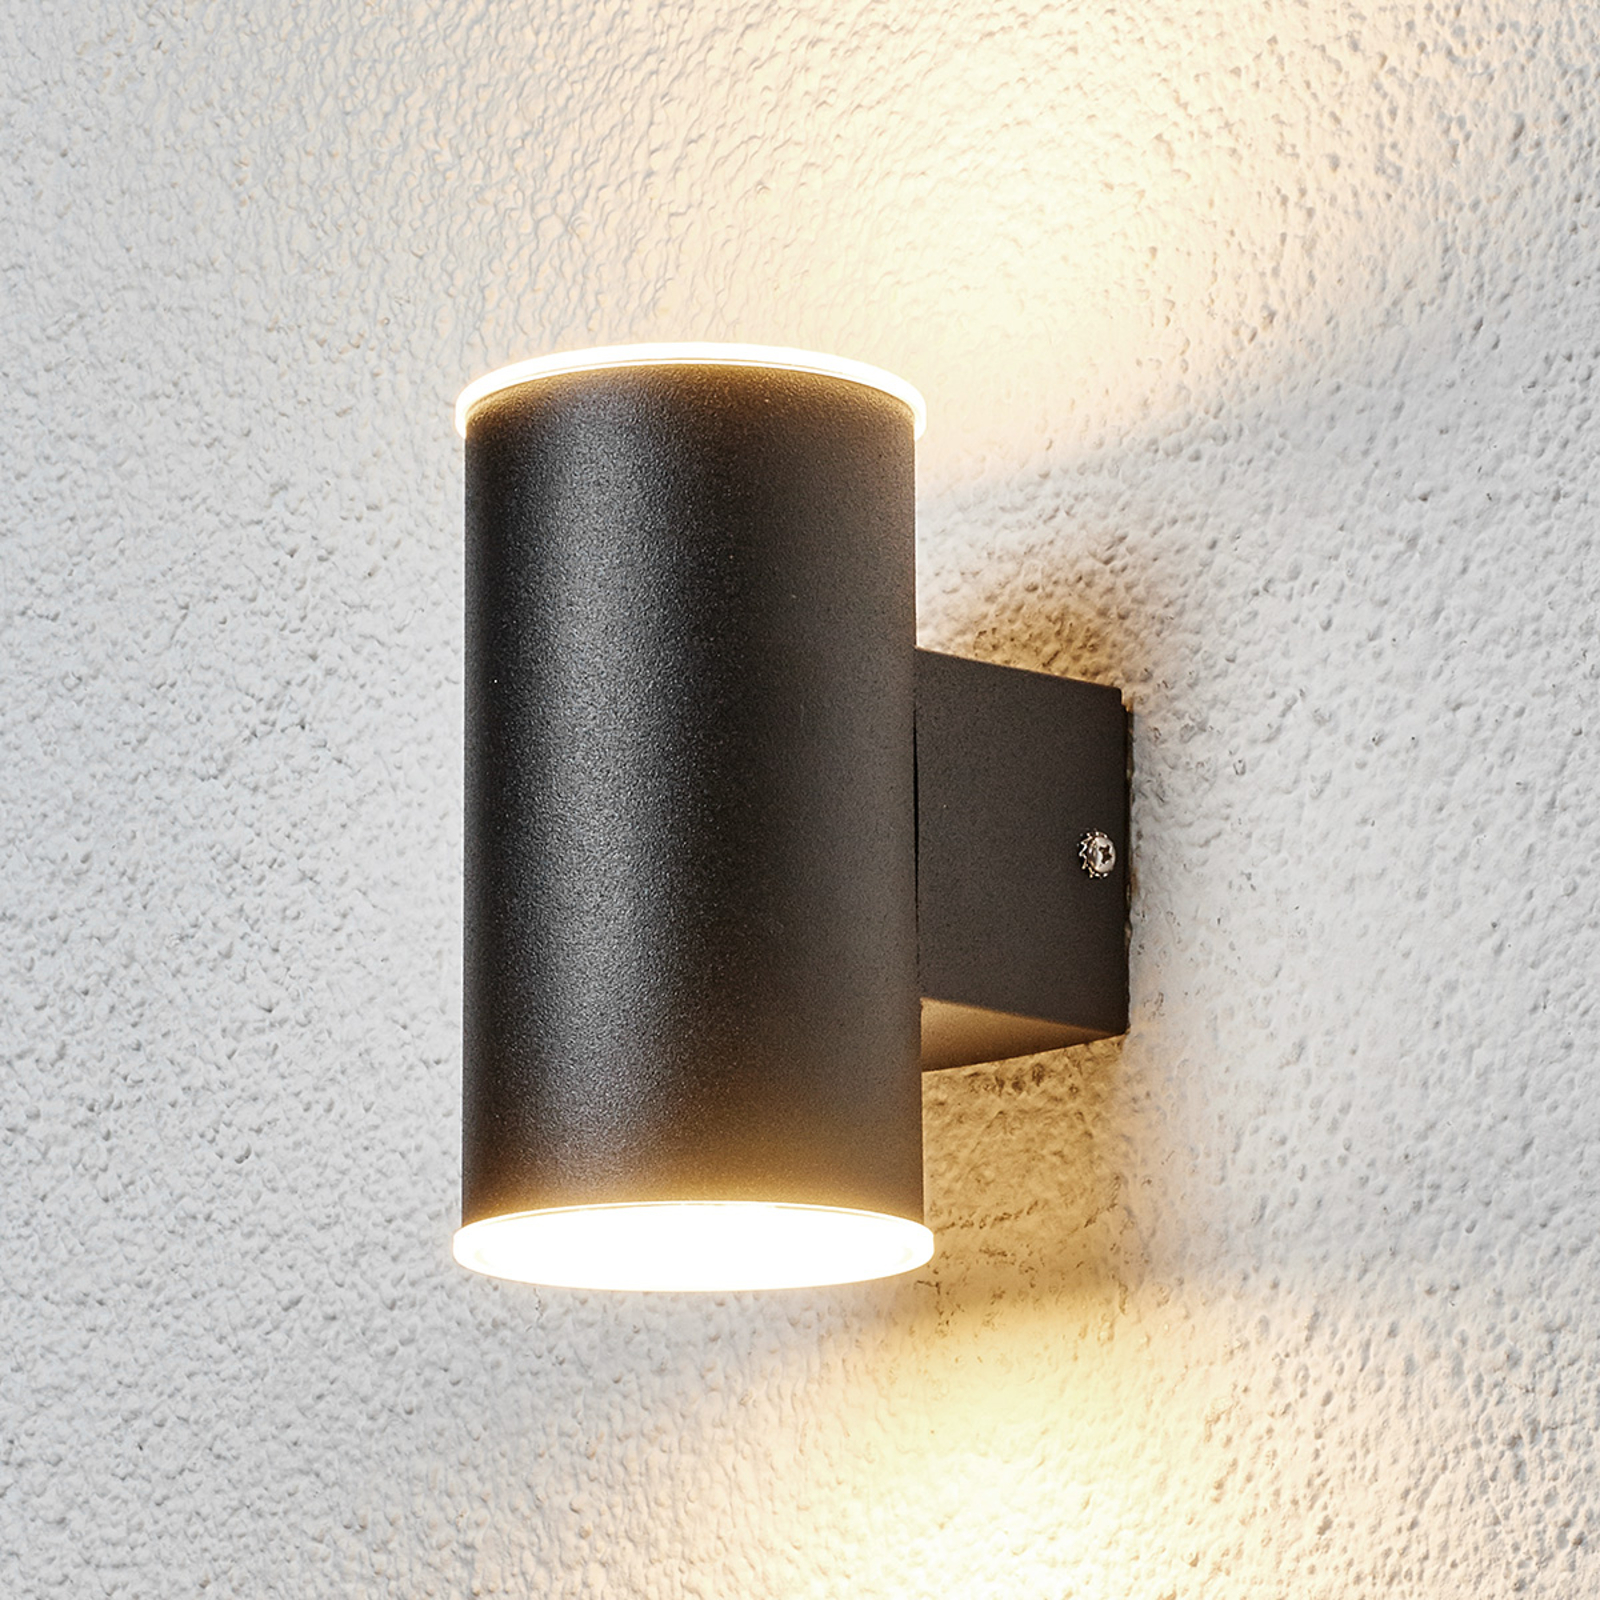 Effective Morena LED outdoor wall light_9988058_1